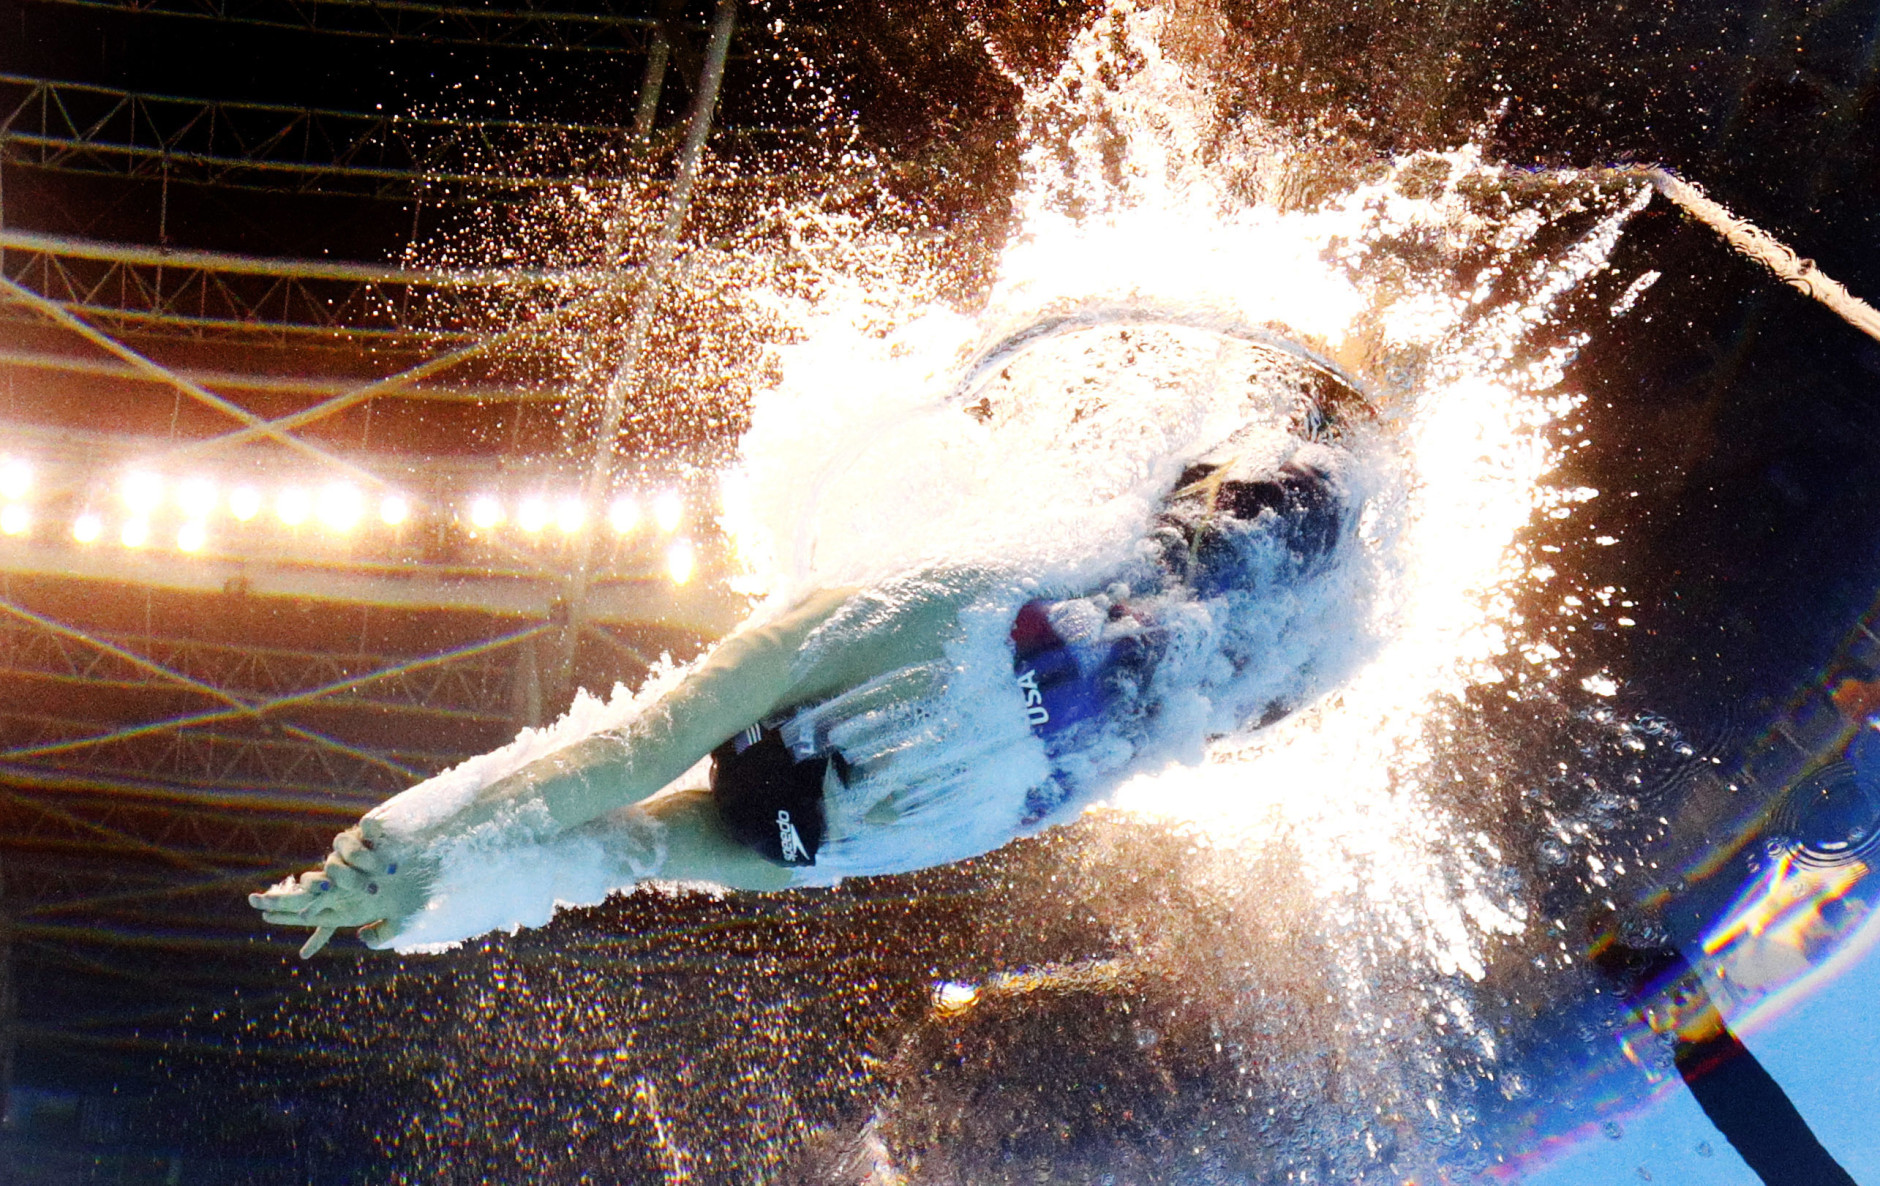 United States' Katie Ledecky competes in a semifinal of the women's 200-meter freestyle during the swimming competitions at the 2016 Summer Olympics in Rio de Janeiro, Brazil, Monday, Aug. 8, 2016. (AP Photo/David J. Phillip)